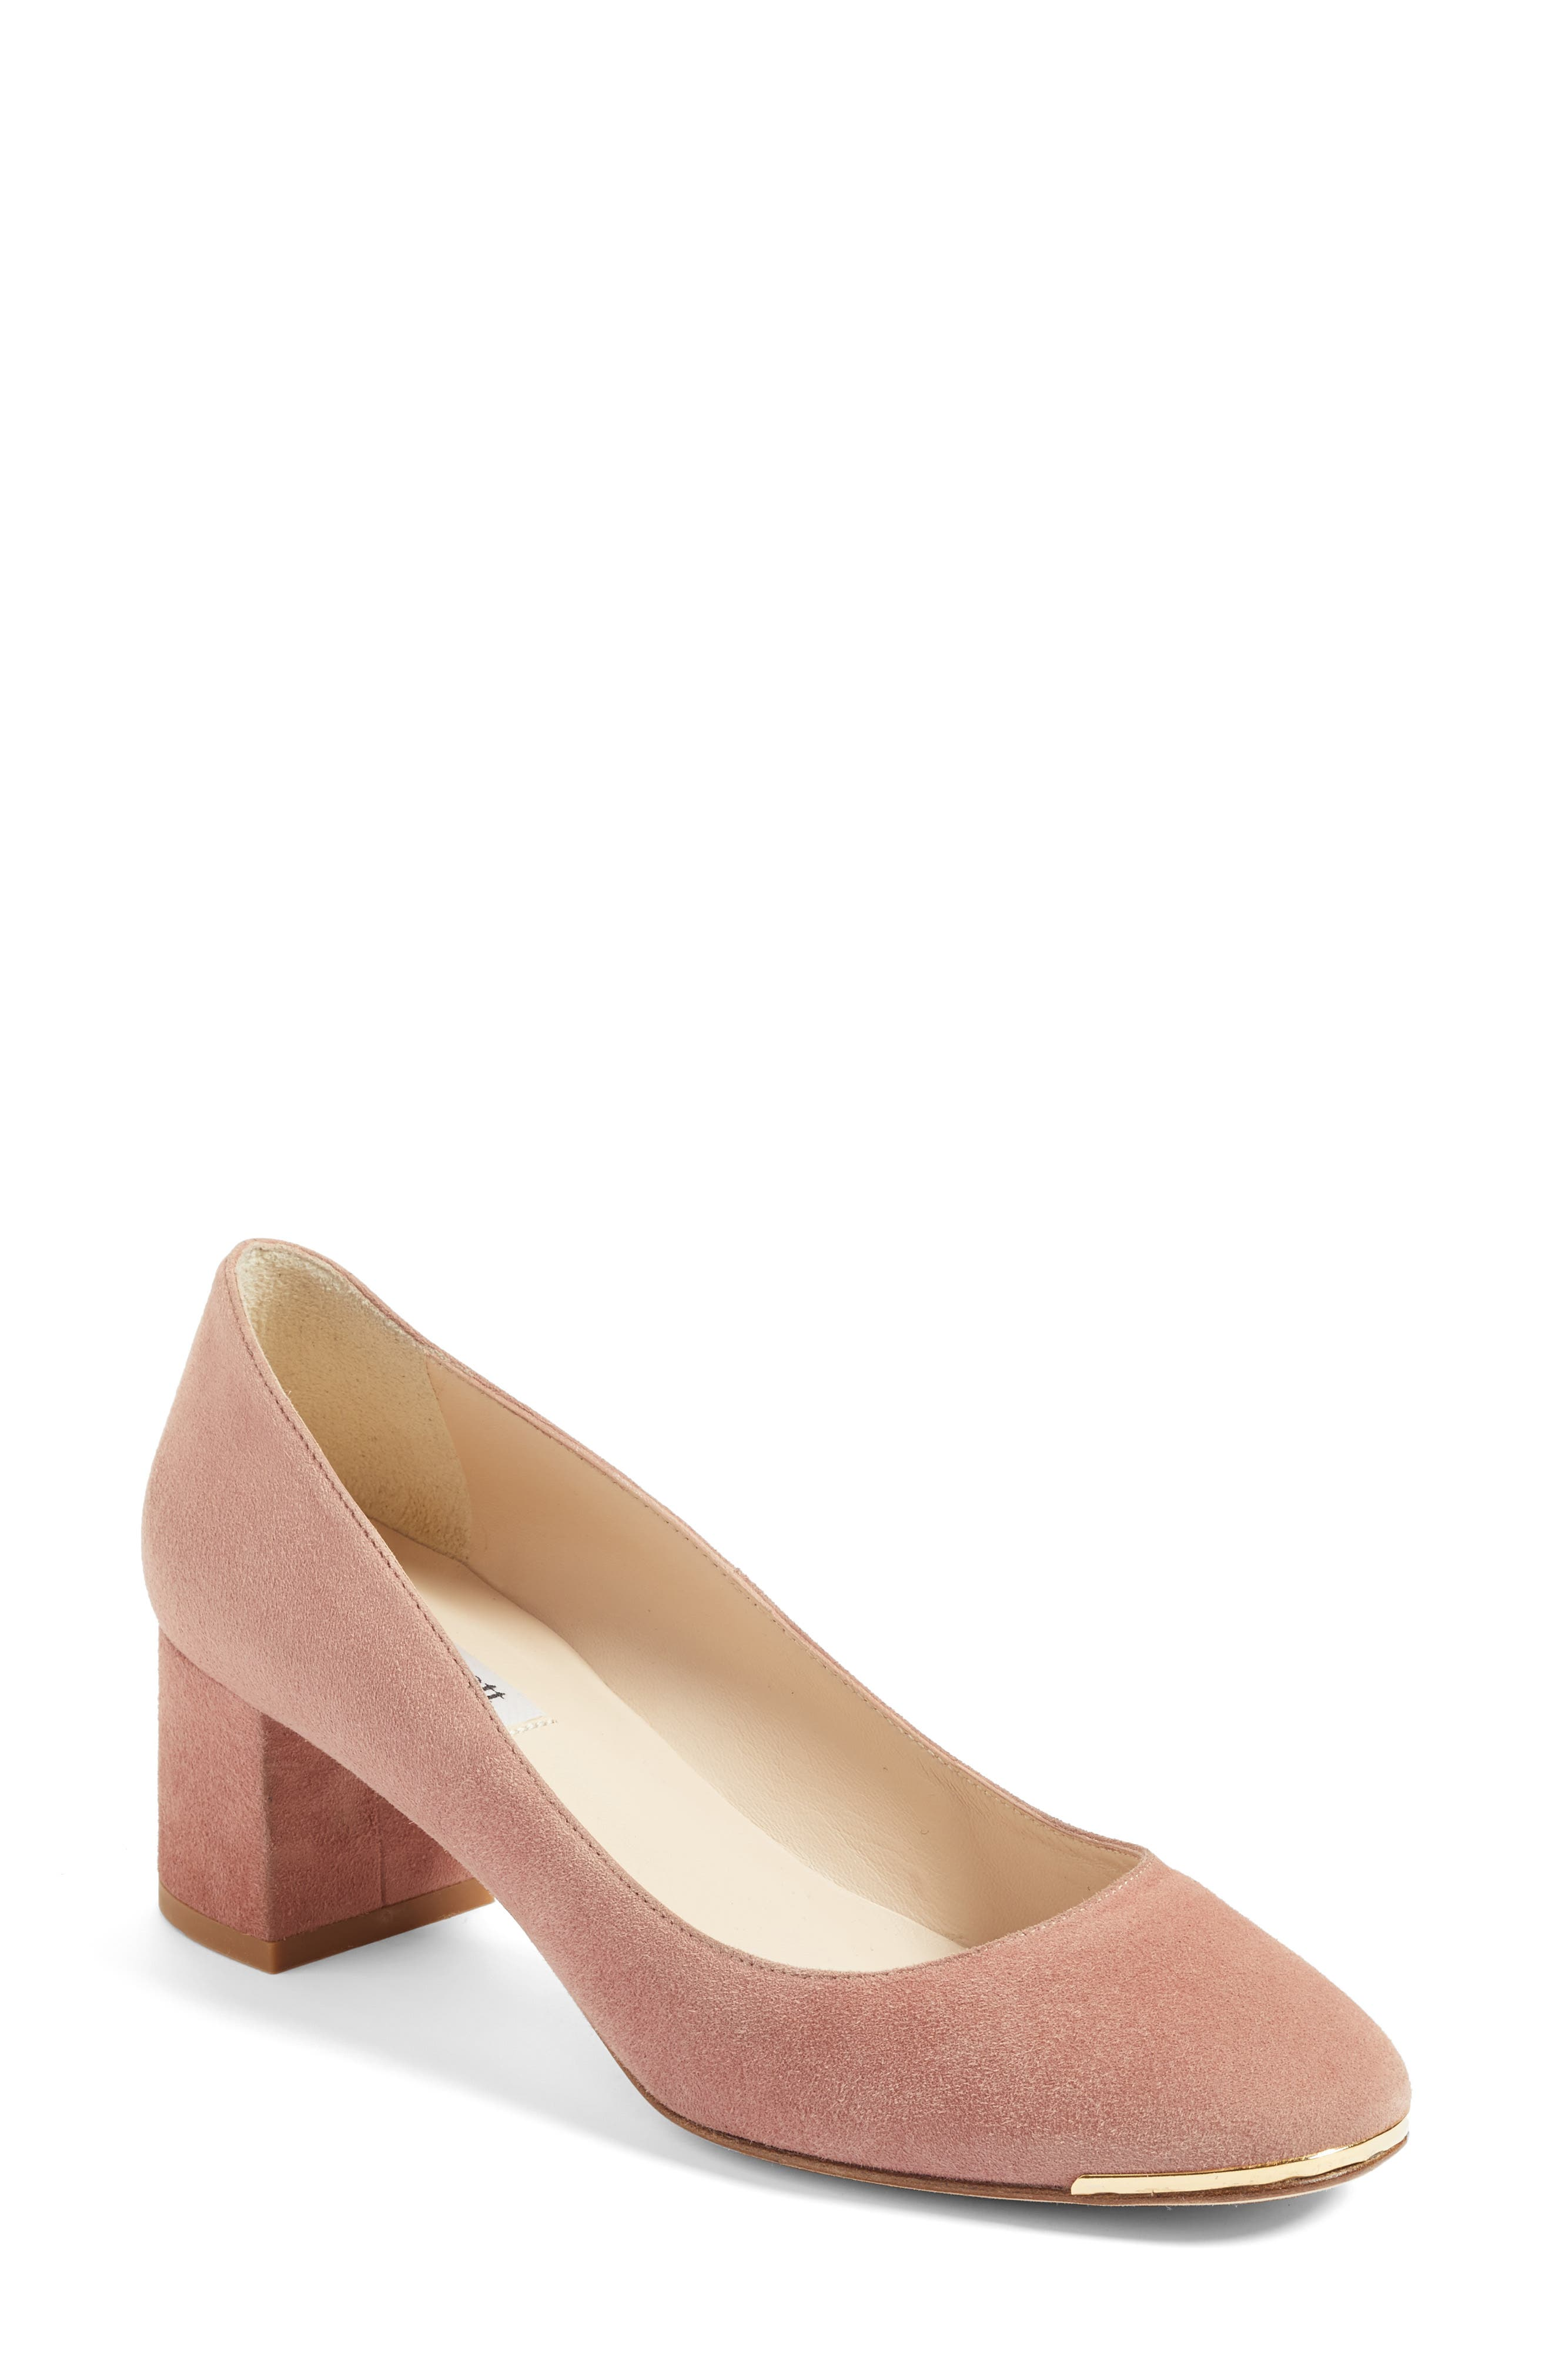 Clemence Pump,                             Main thumbnail 1, color,                             Pink/ Dark Pink